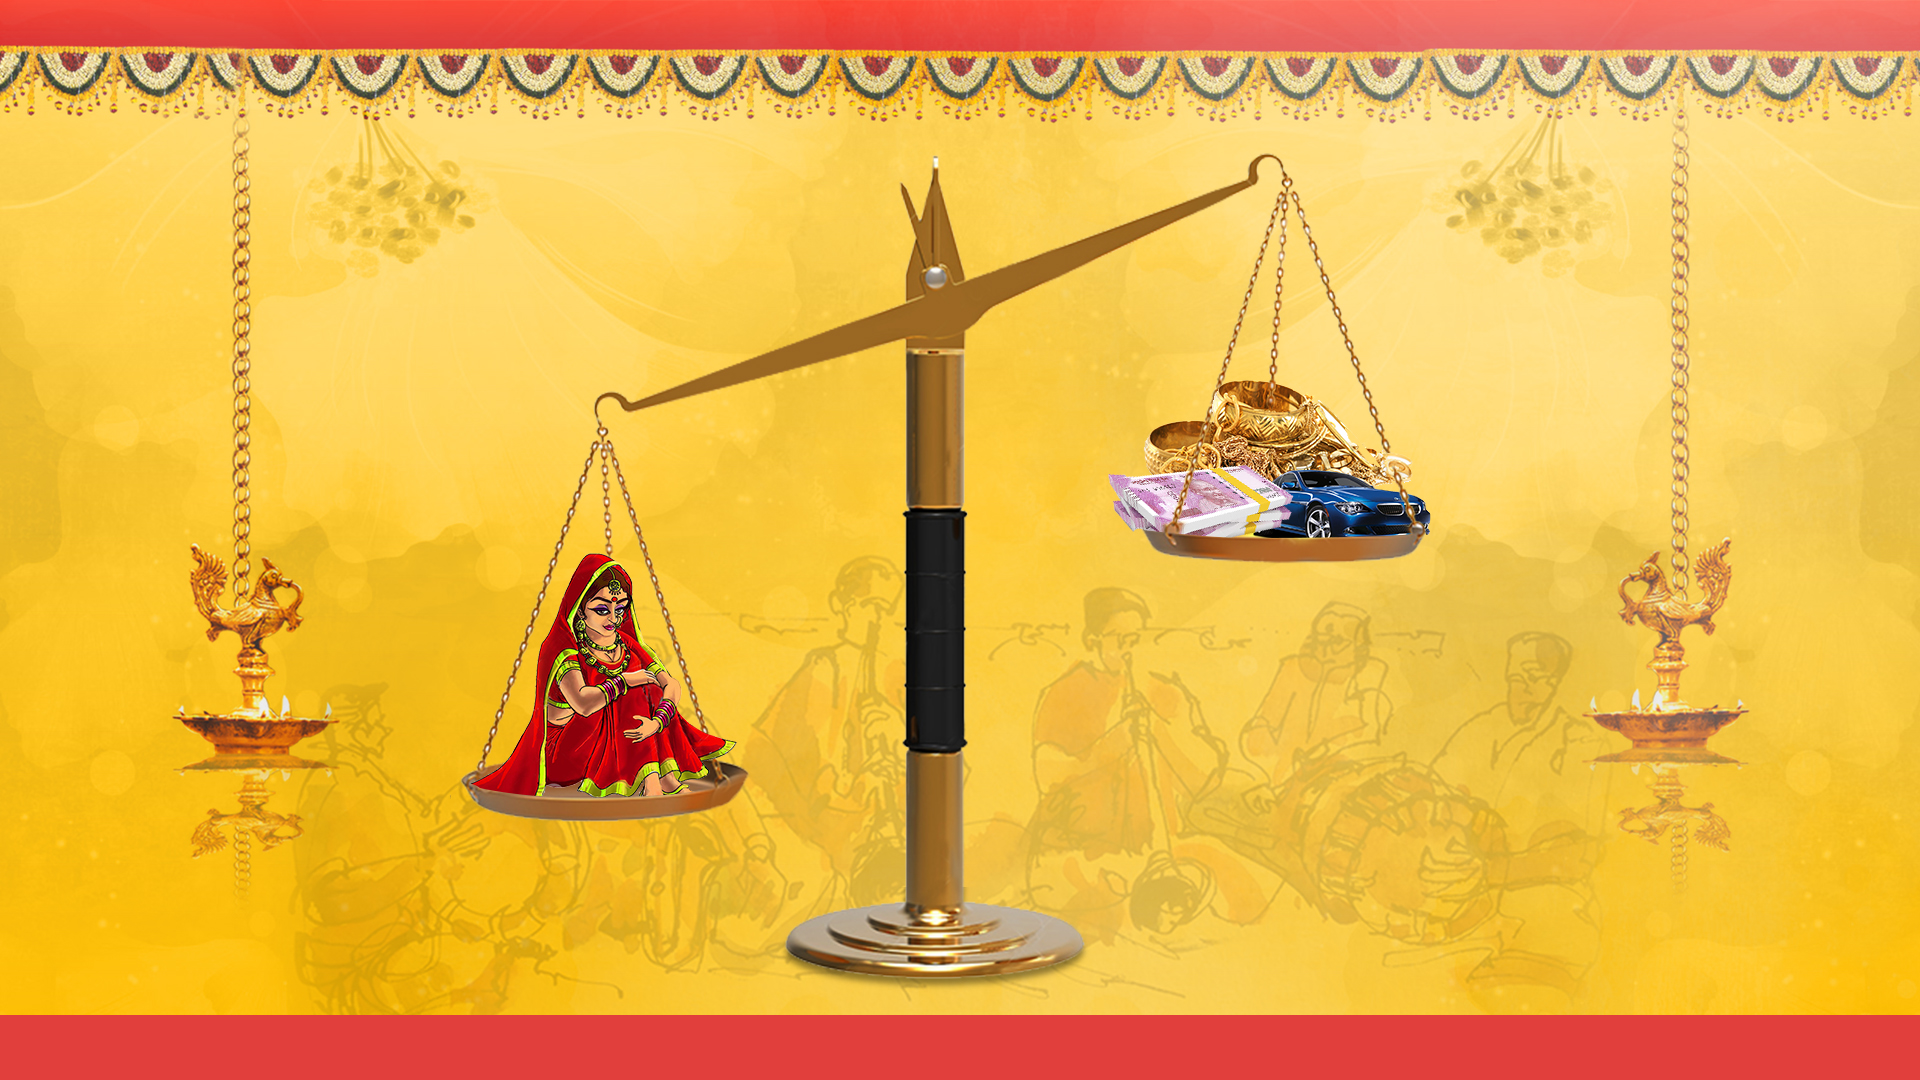 dowry system with pictures It is one of two public information videos that take aim at the dowry system my friends and i clapped, said rukhmini puri, a history student, as she emerged with her friends from a cinema.